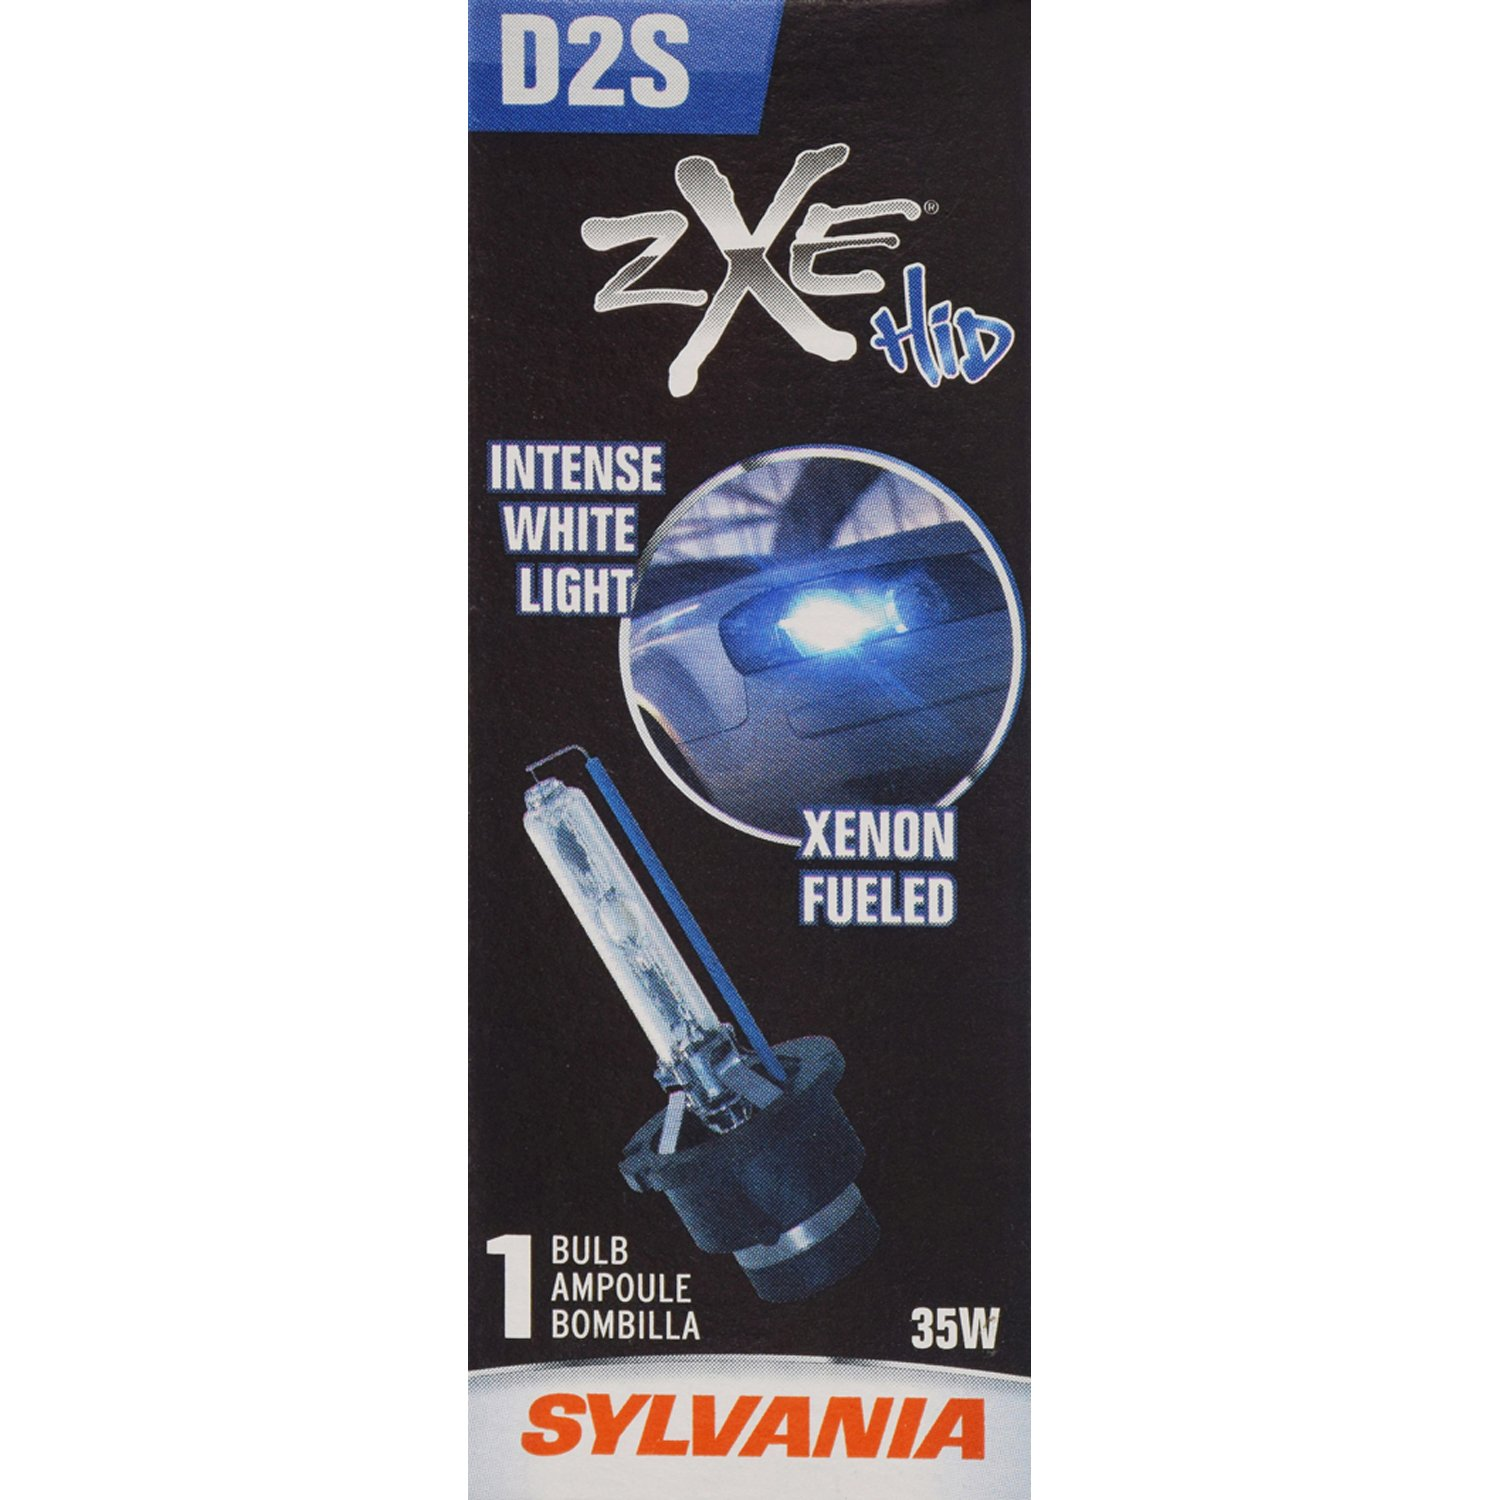 SYLVANIA - D2S SilverStar zXe HID (High Intensity Discharge) Headlight Bulb - High Performance Brighter and Whiter Light, Xenon Fueled, with a HID Attitude ...